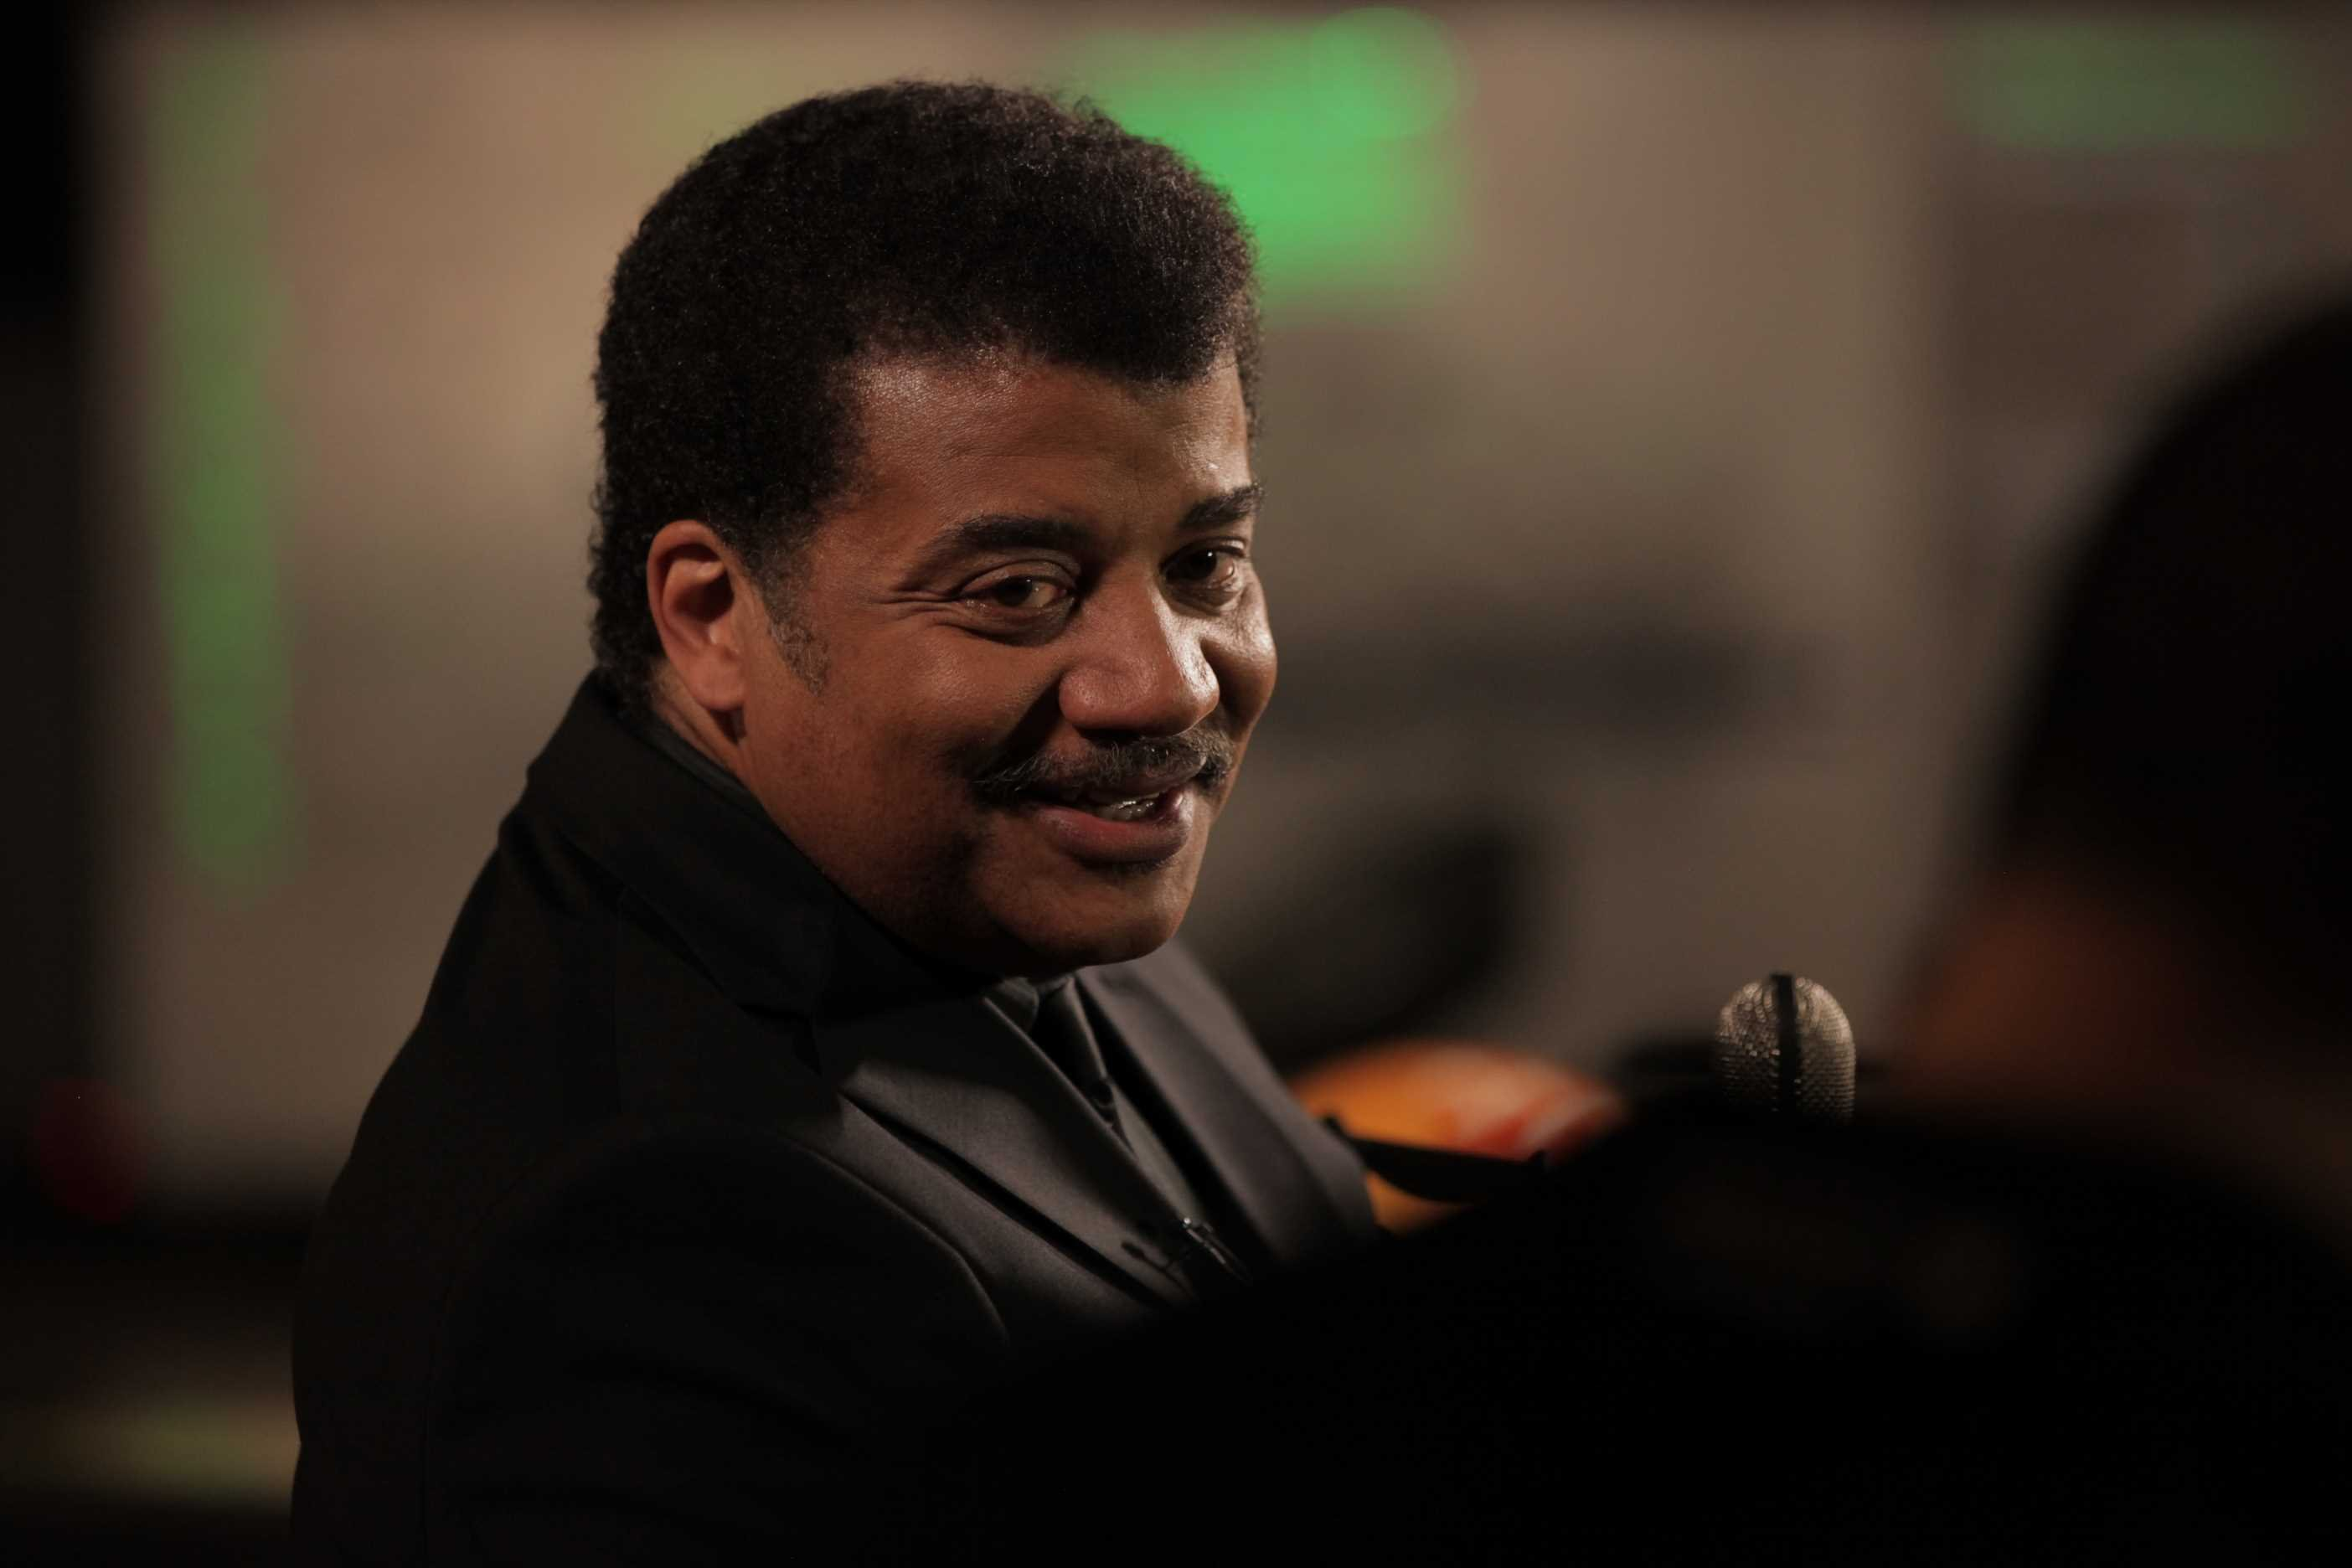 Neil deGrasse Tyson Addresses Sexual Misconduct Accusations: 'Why Believe Me?'